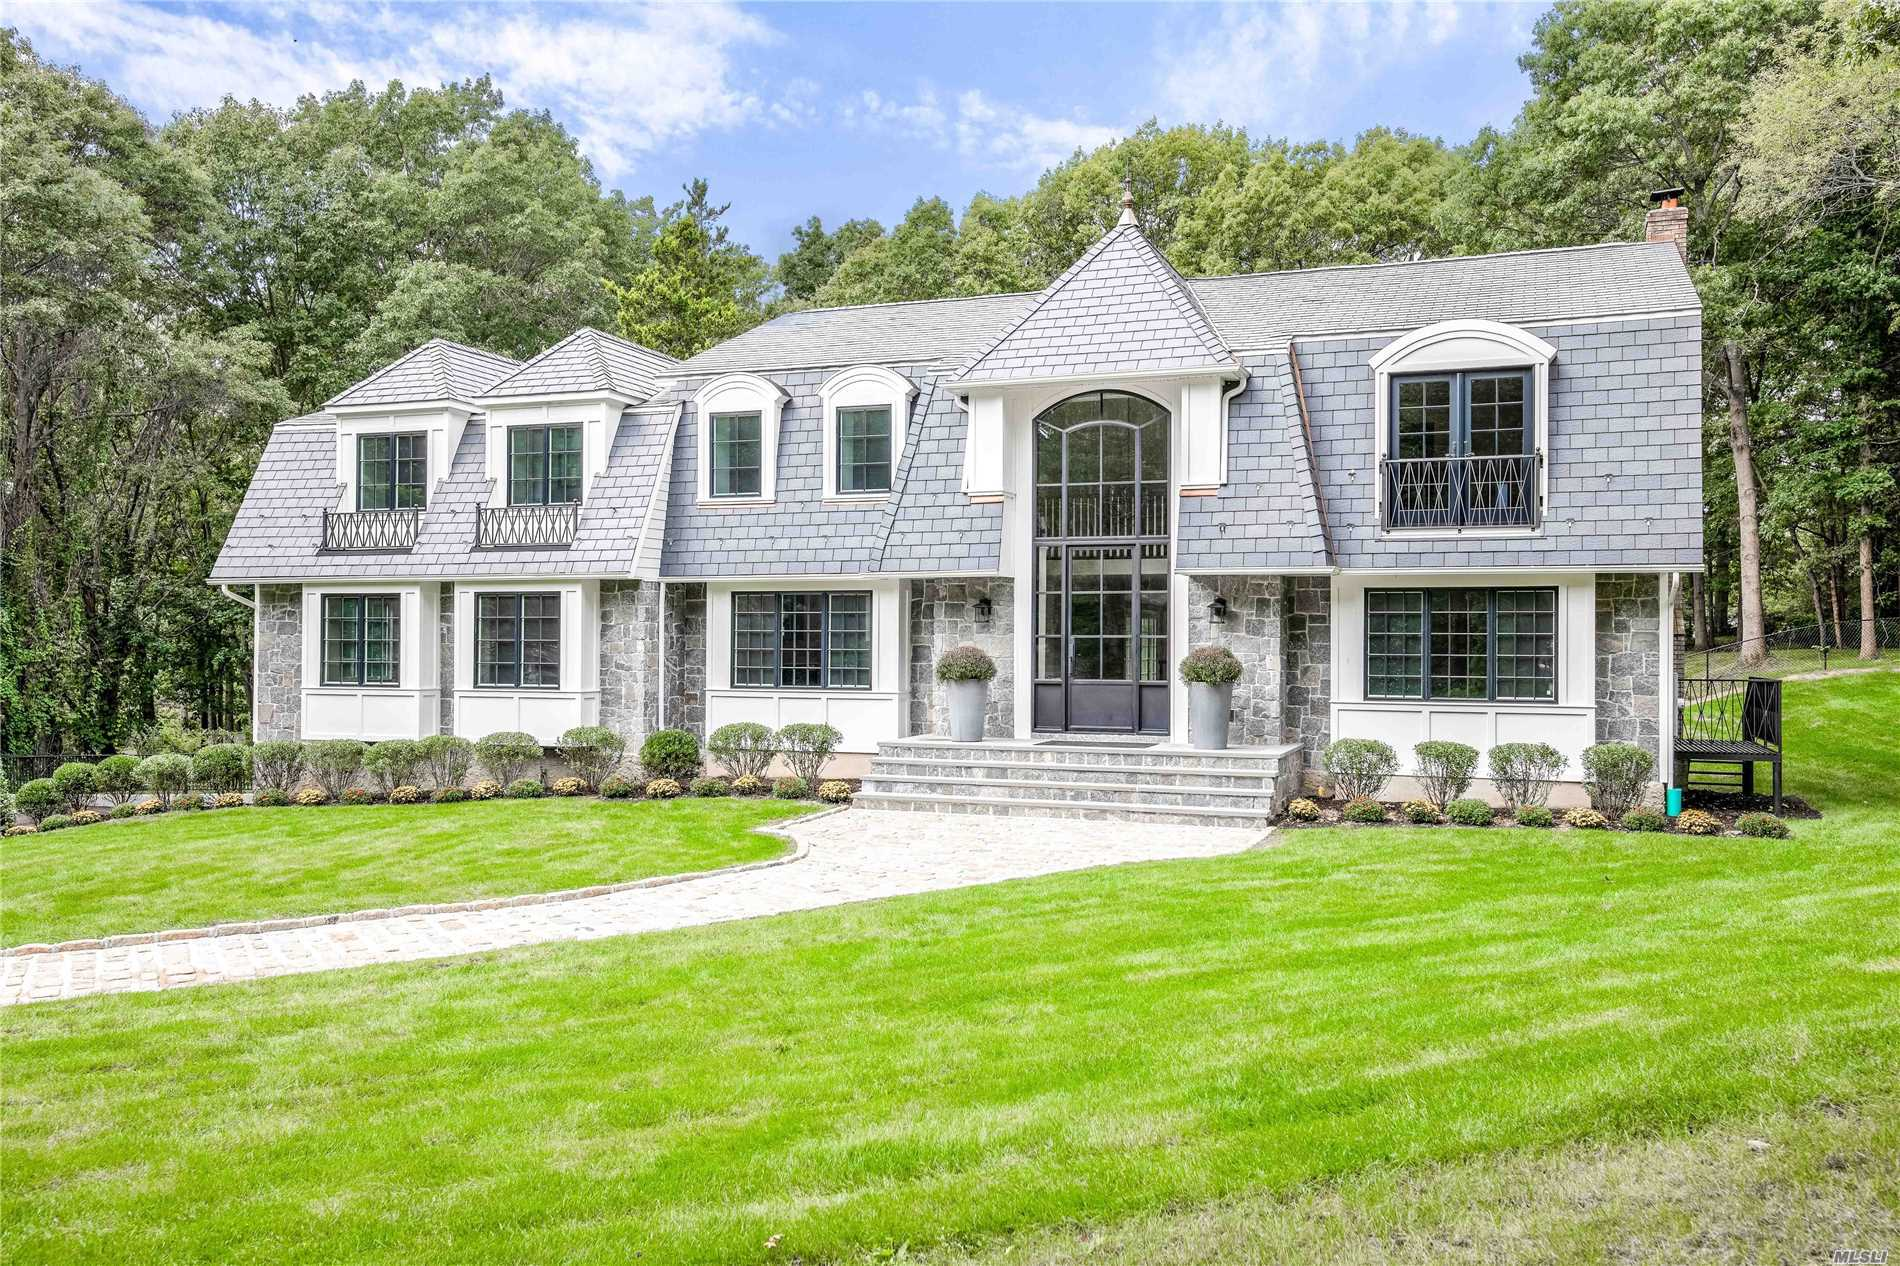 Ready Just In Time For The Holidays.Located In The Incorporated Village Of Laurel Hollow. Brand New, Custom Built And Designed For Today's Lifestyle.Offers An Open And Easy Floor Plan For Entertaining And Everyday Living. Gorgeous Kitchen And Baths. Flooded With Loads Of Natural Light. Set On 2 Pristine Acres Of Property With In-Ground Gunite Pool And Cabana. Car Collectors Dream... 5 Car Garage. Village Beach And Mooring Rights, Police Force. Cold Spring Harbor School District. 5 Min To Lirr.